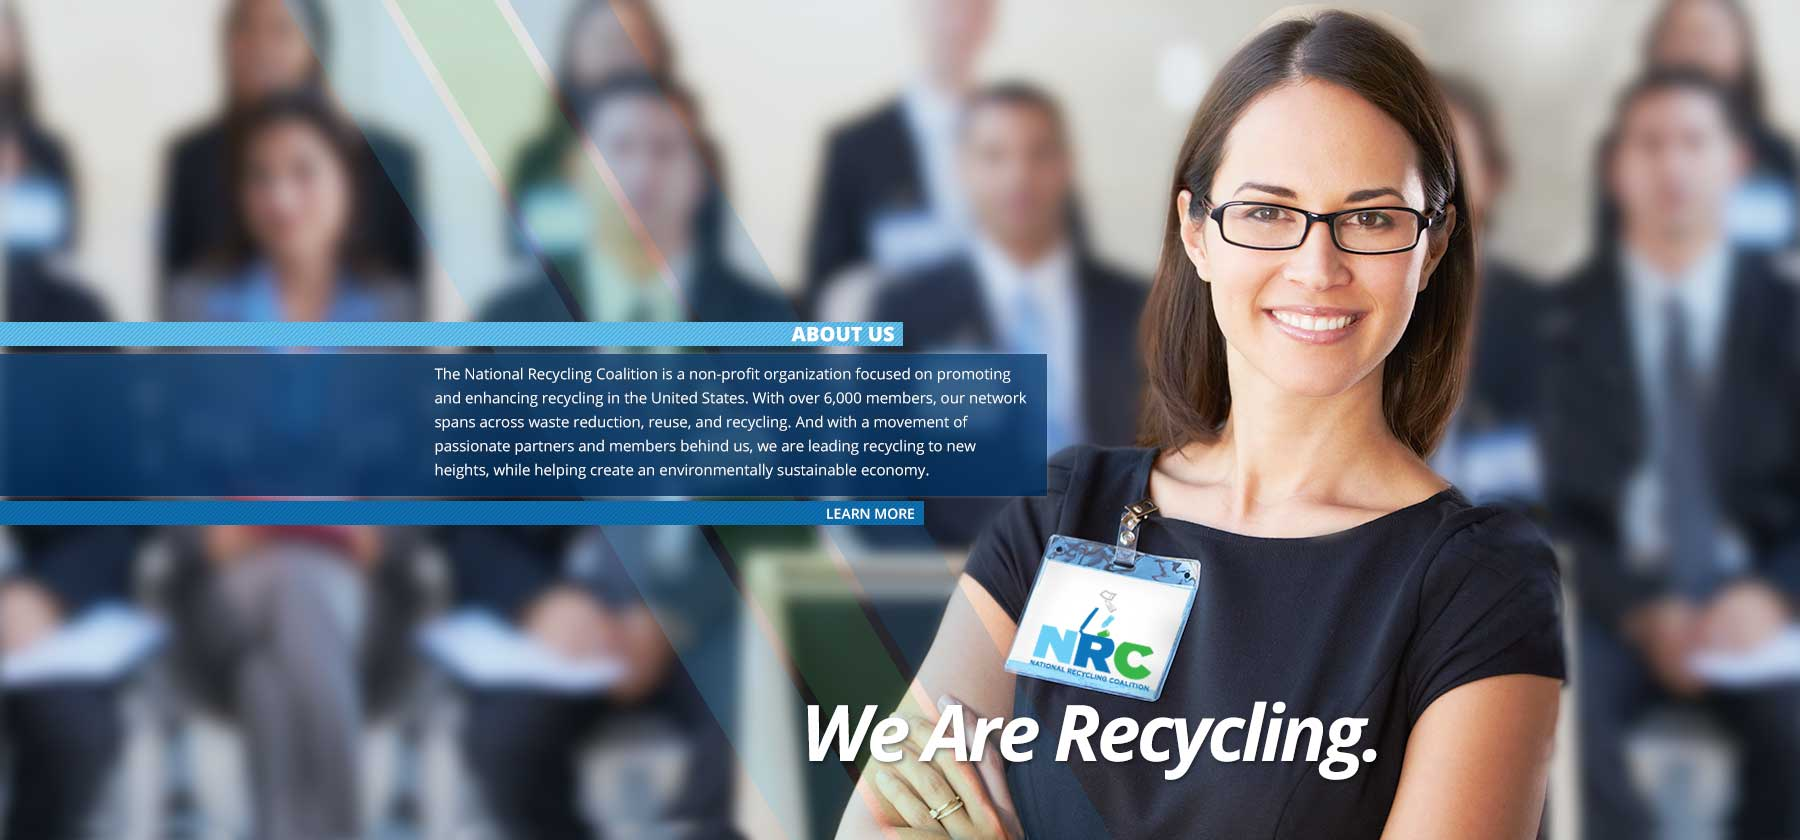 NRC - We Are Recycling